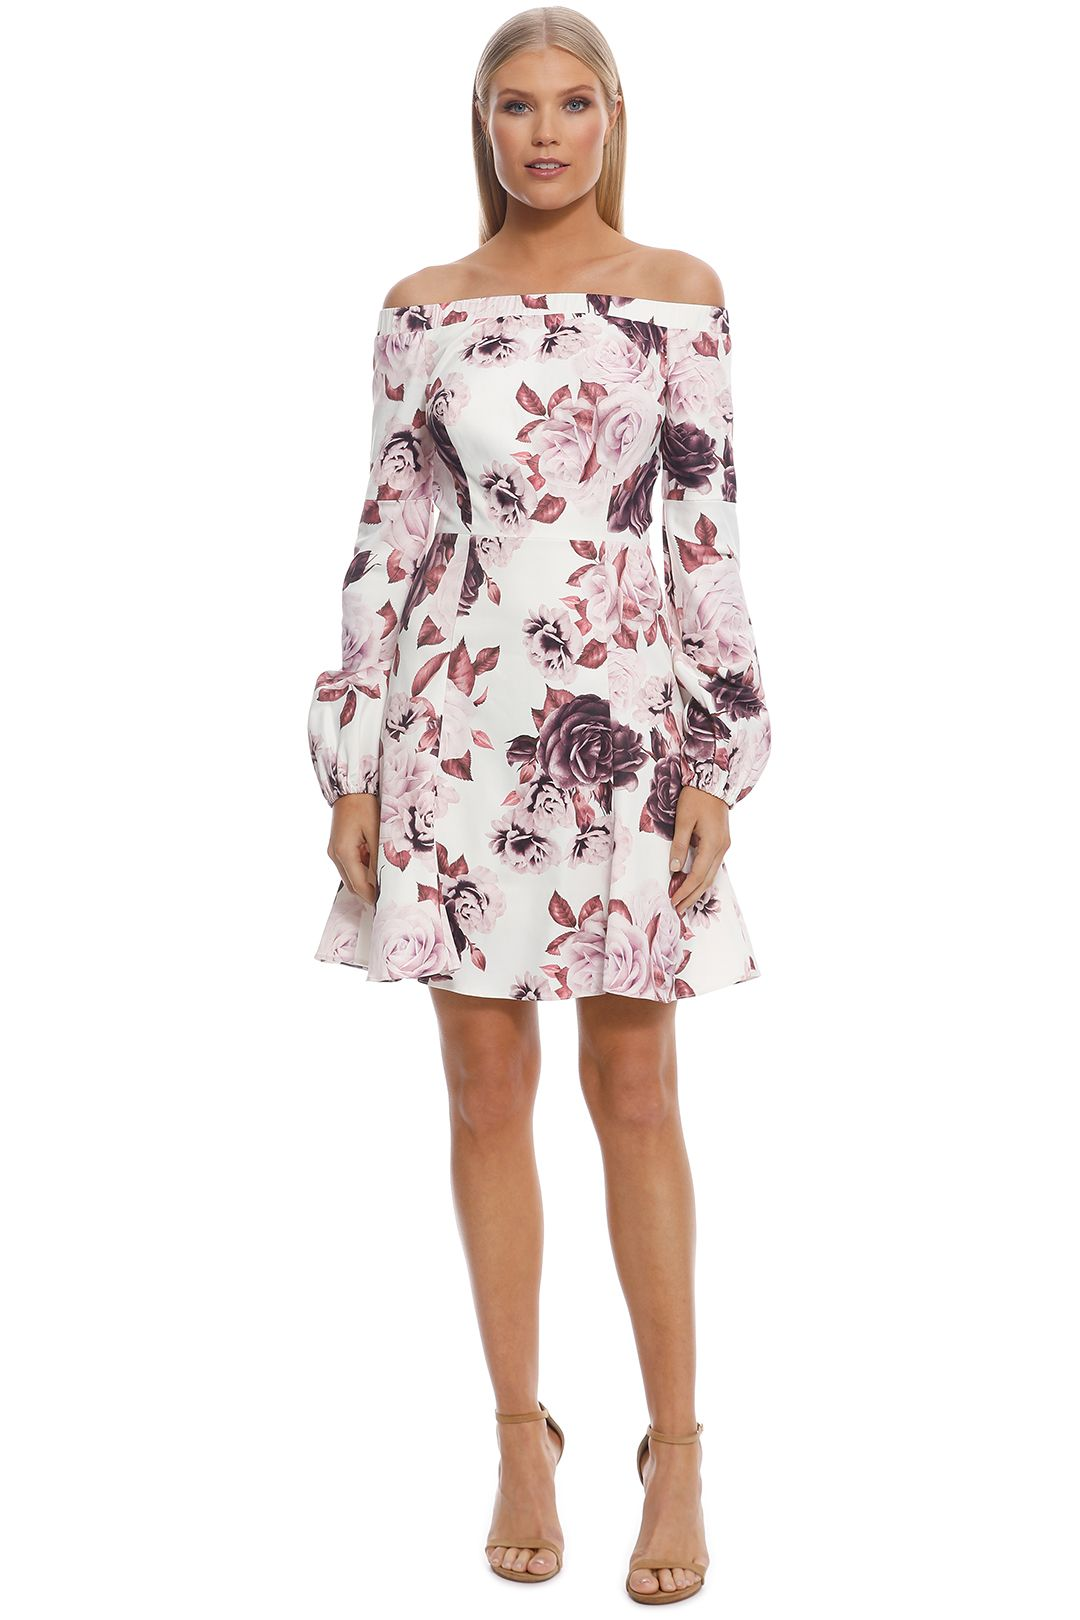 Elle Zeitoune - Deanne Dress - White Floral - Front